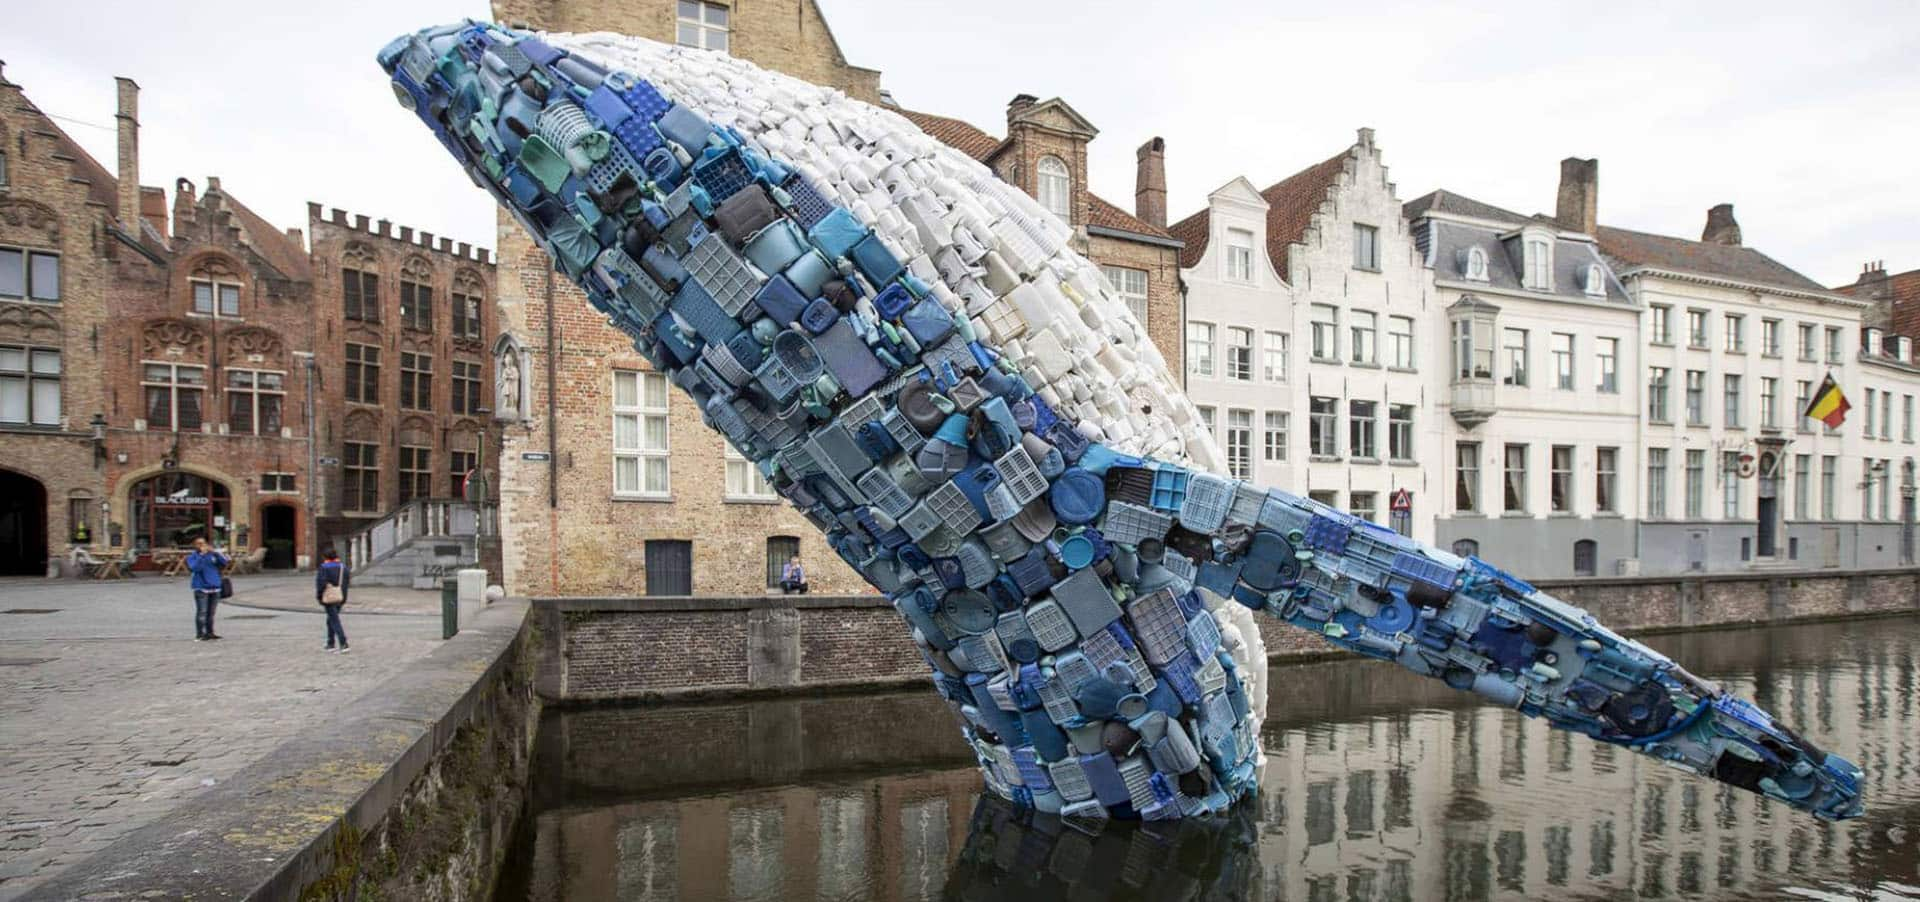 Whale Made From Plastic Waste In Bruges Triennale